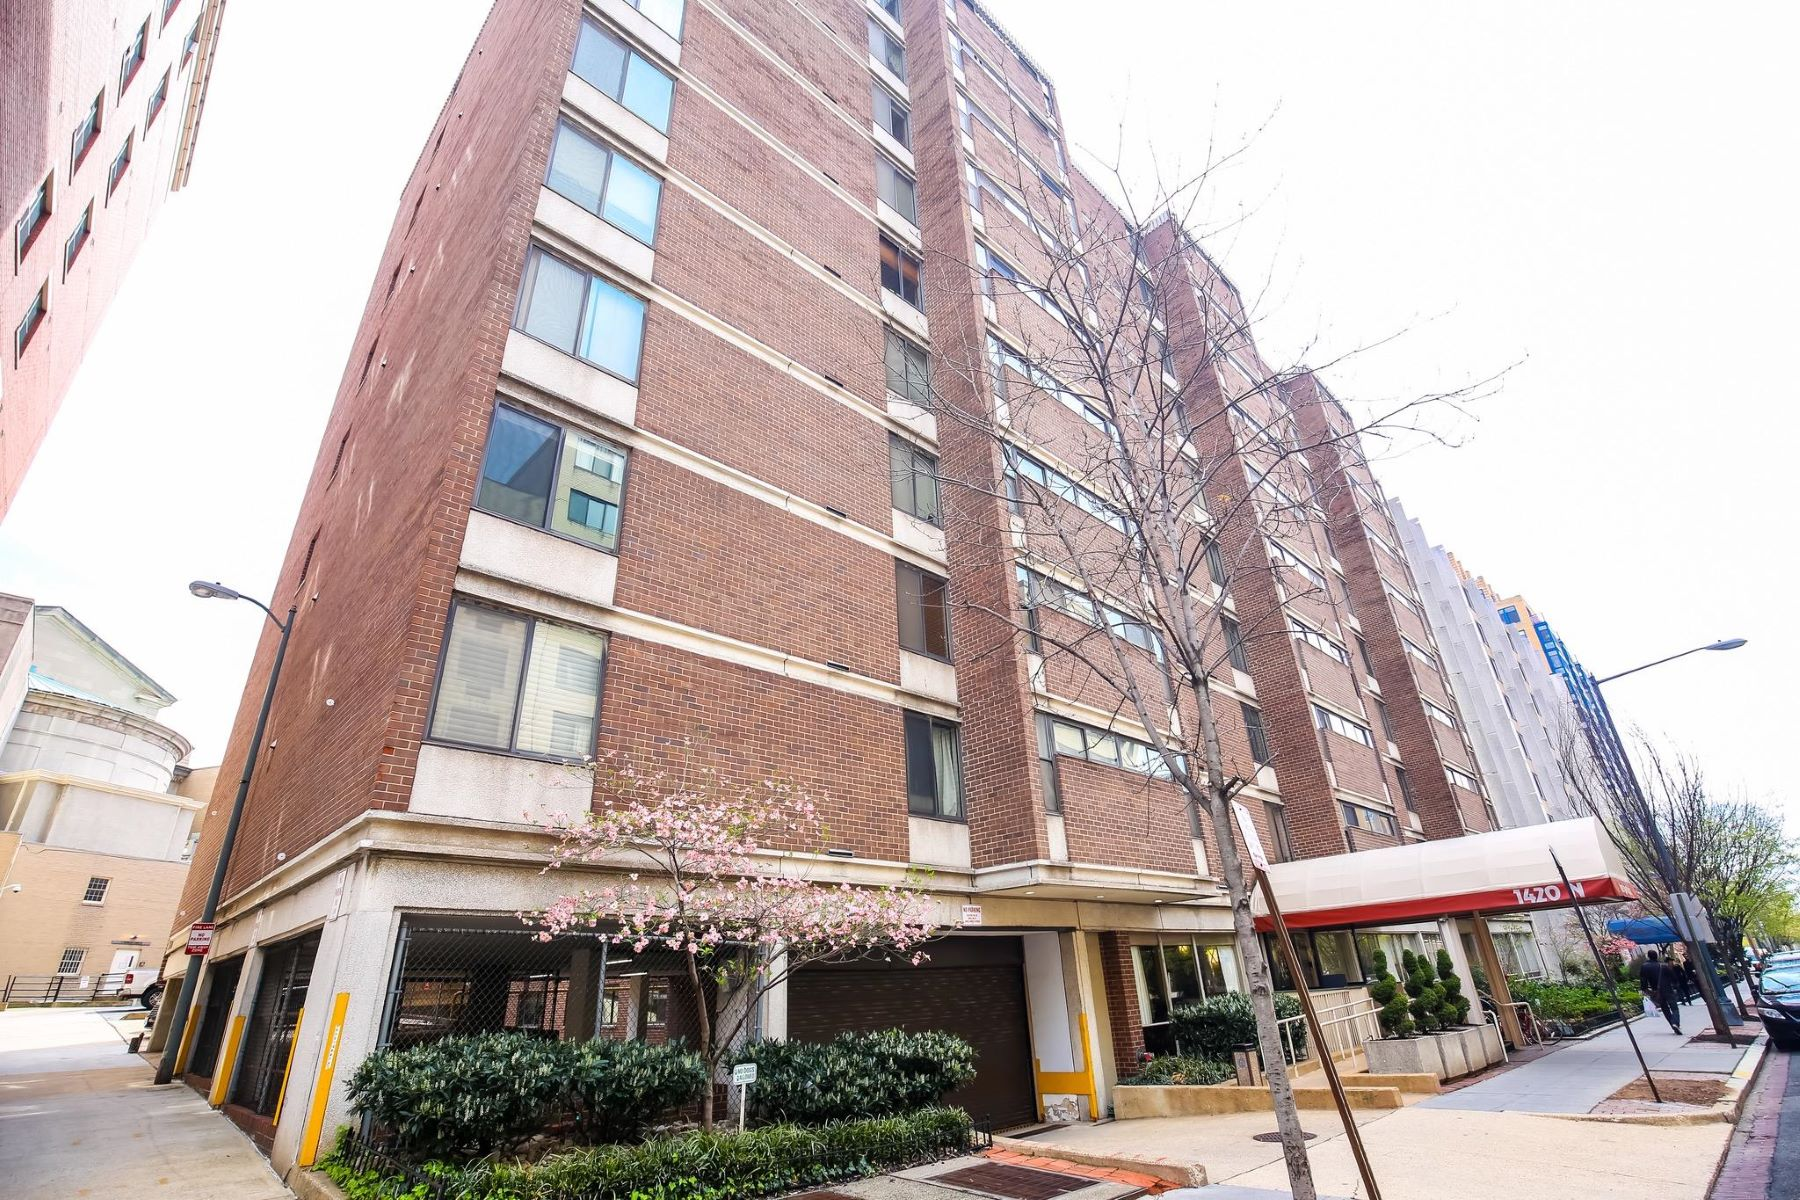 Condominium for Rent at 1420 N St Nw #214 1420 N St Nw #214 Washington, District Of Columbia 20005 United States